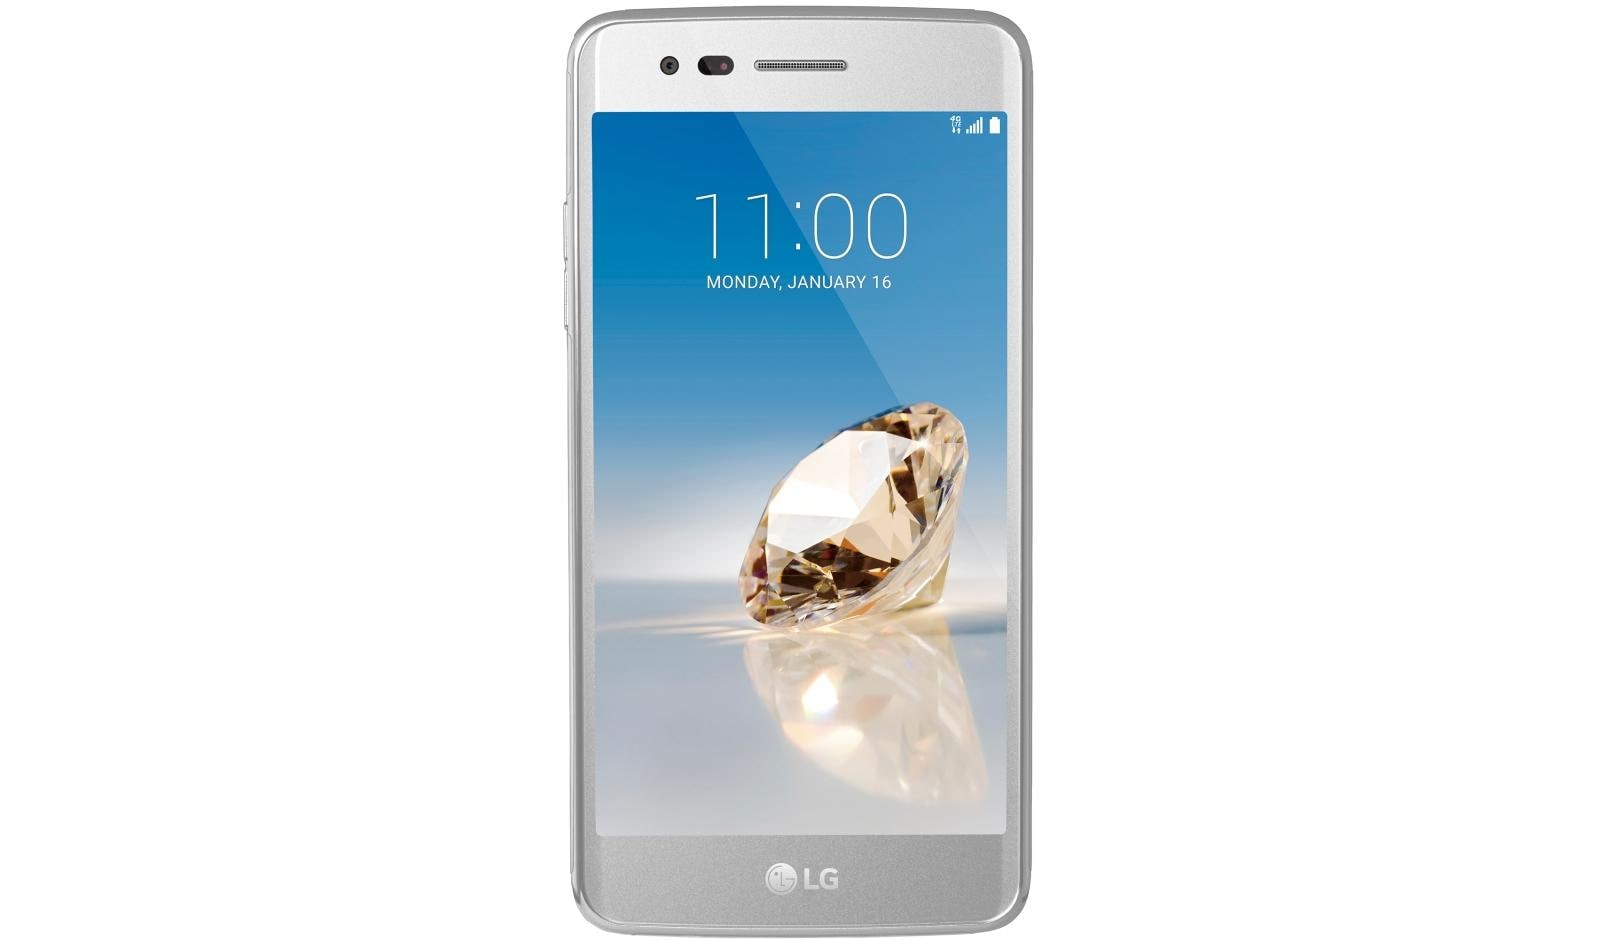 Lg Aristo Smartphone For Metro By T Mobile Ms210 In Silver Usa Apple Iphone 5 32gb White Free Tempered Glass Refurbish